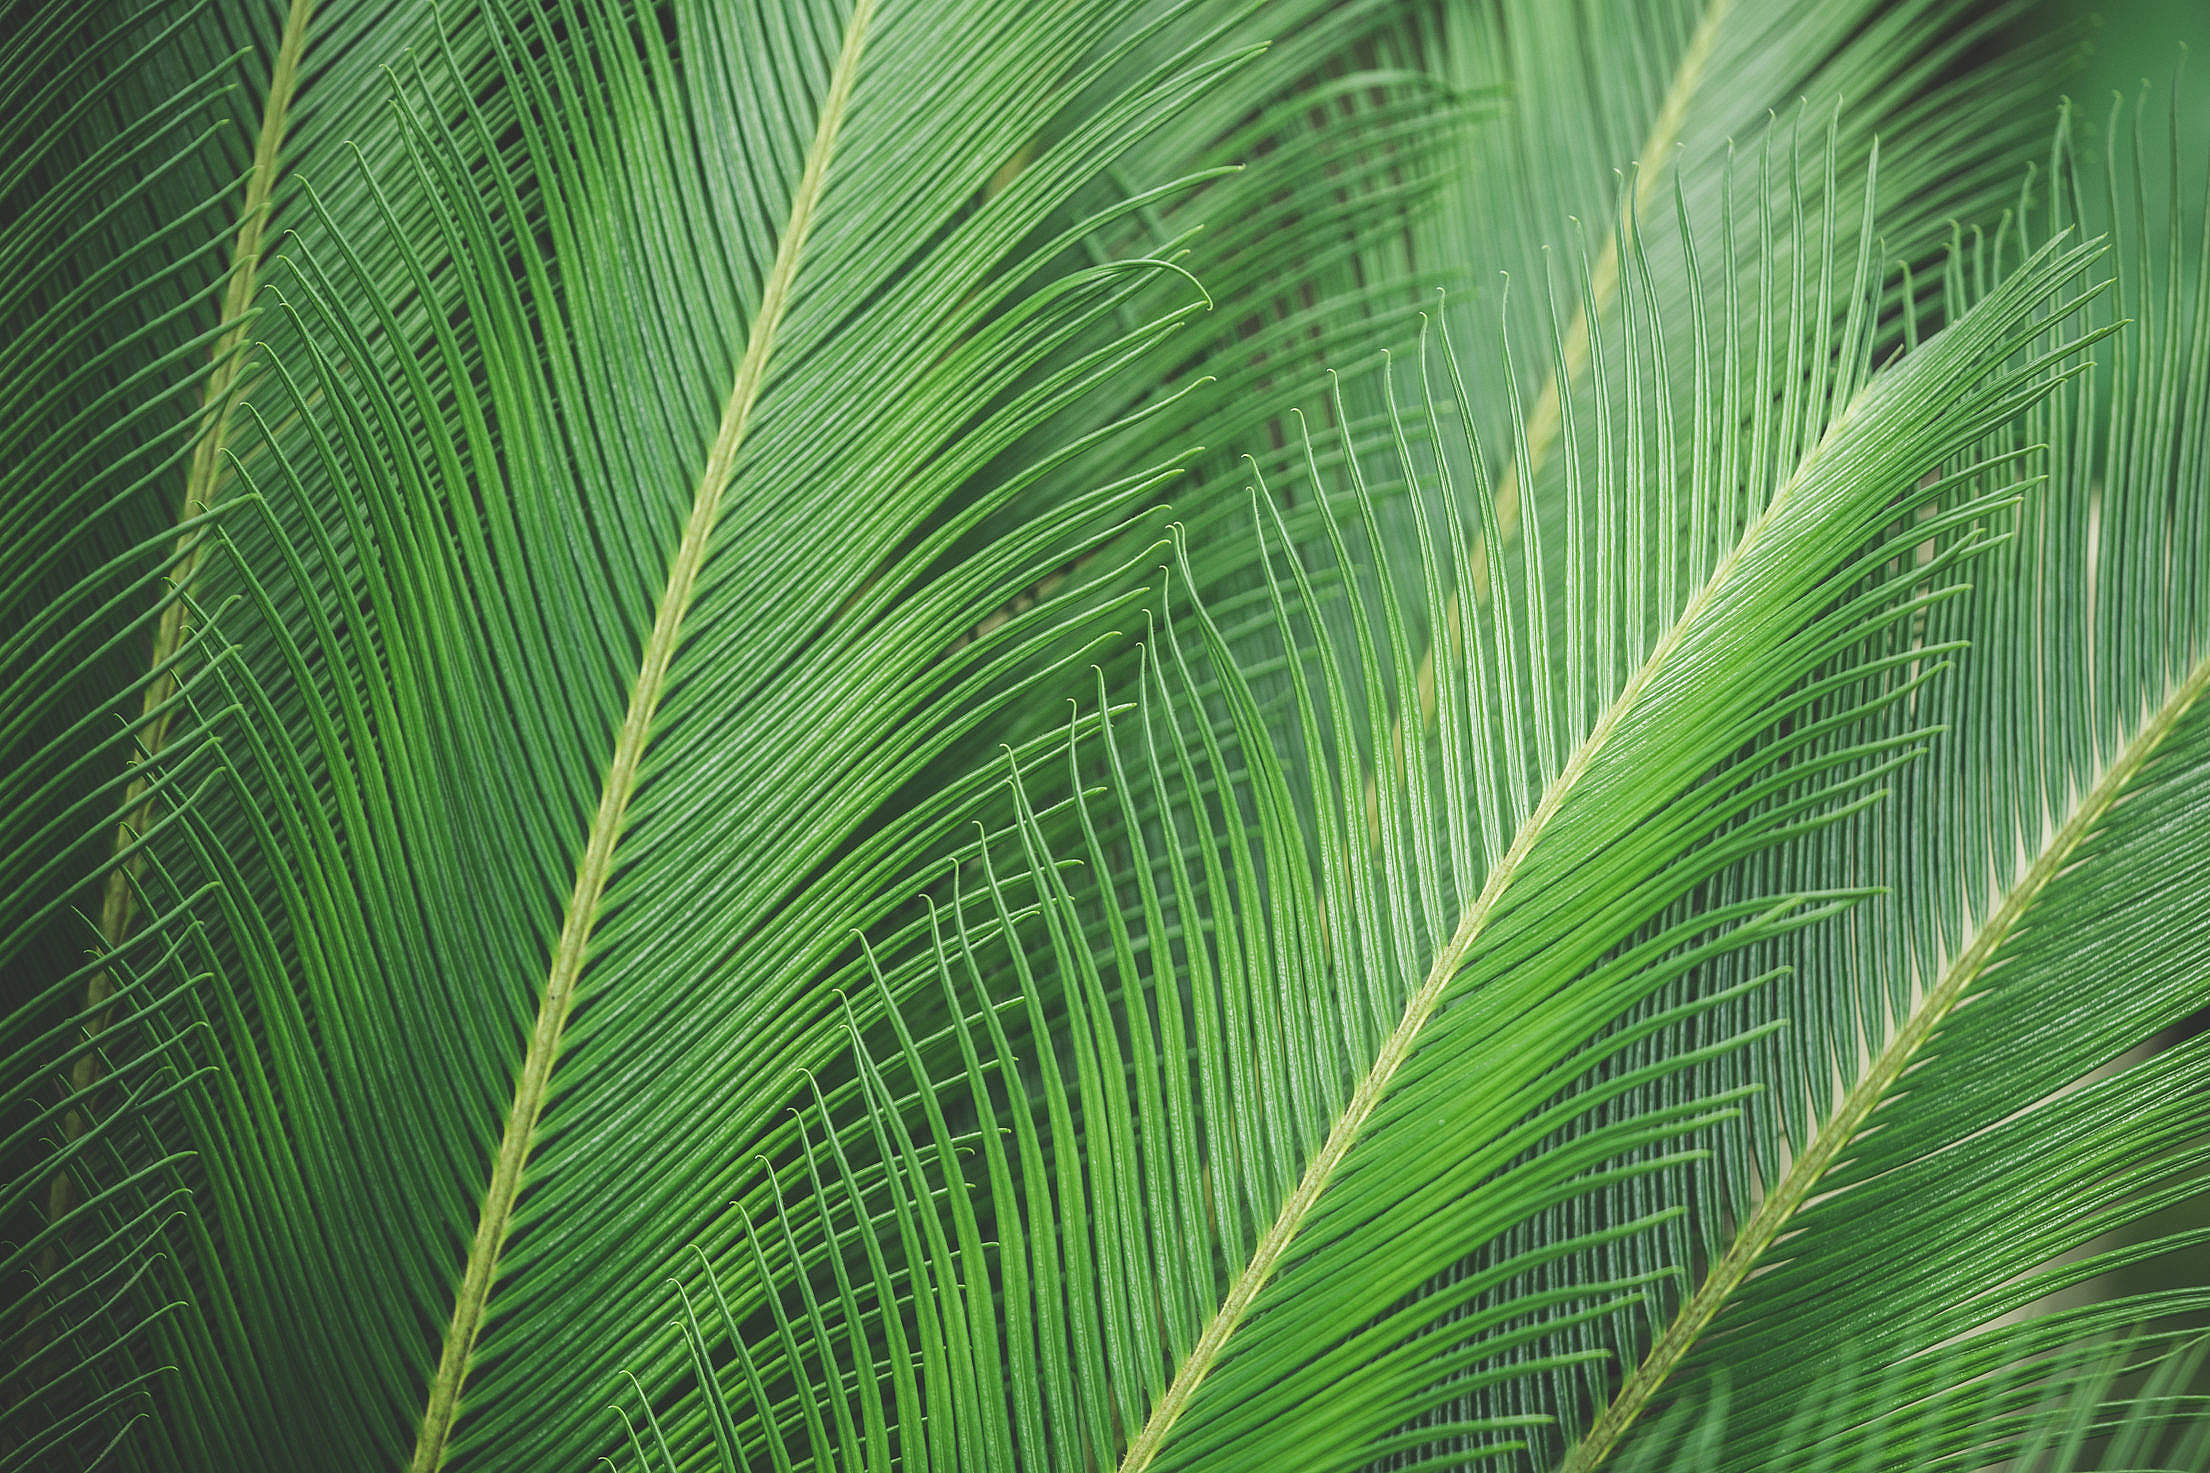 Green Palm Leaves Free Stock Photo